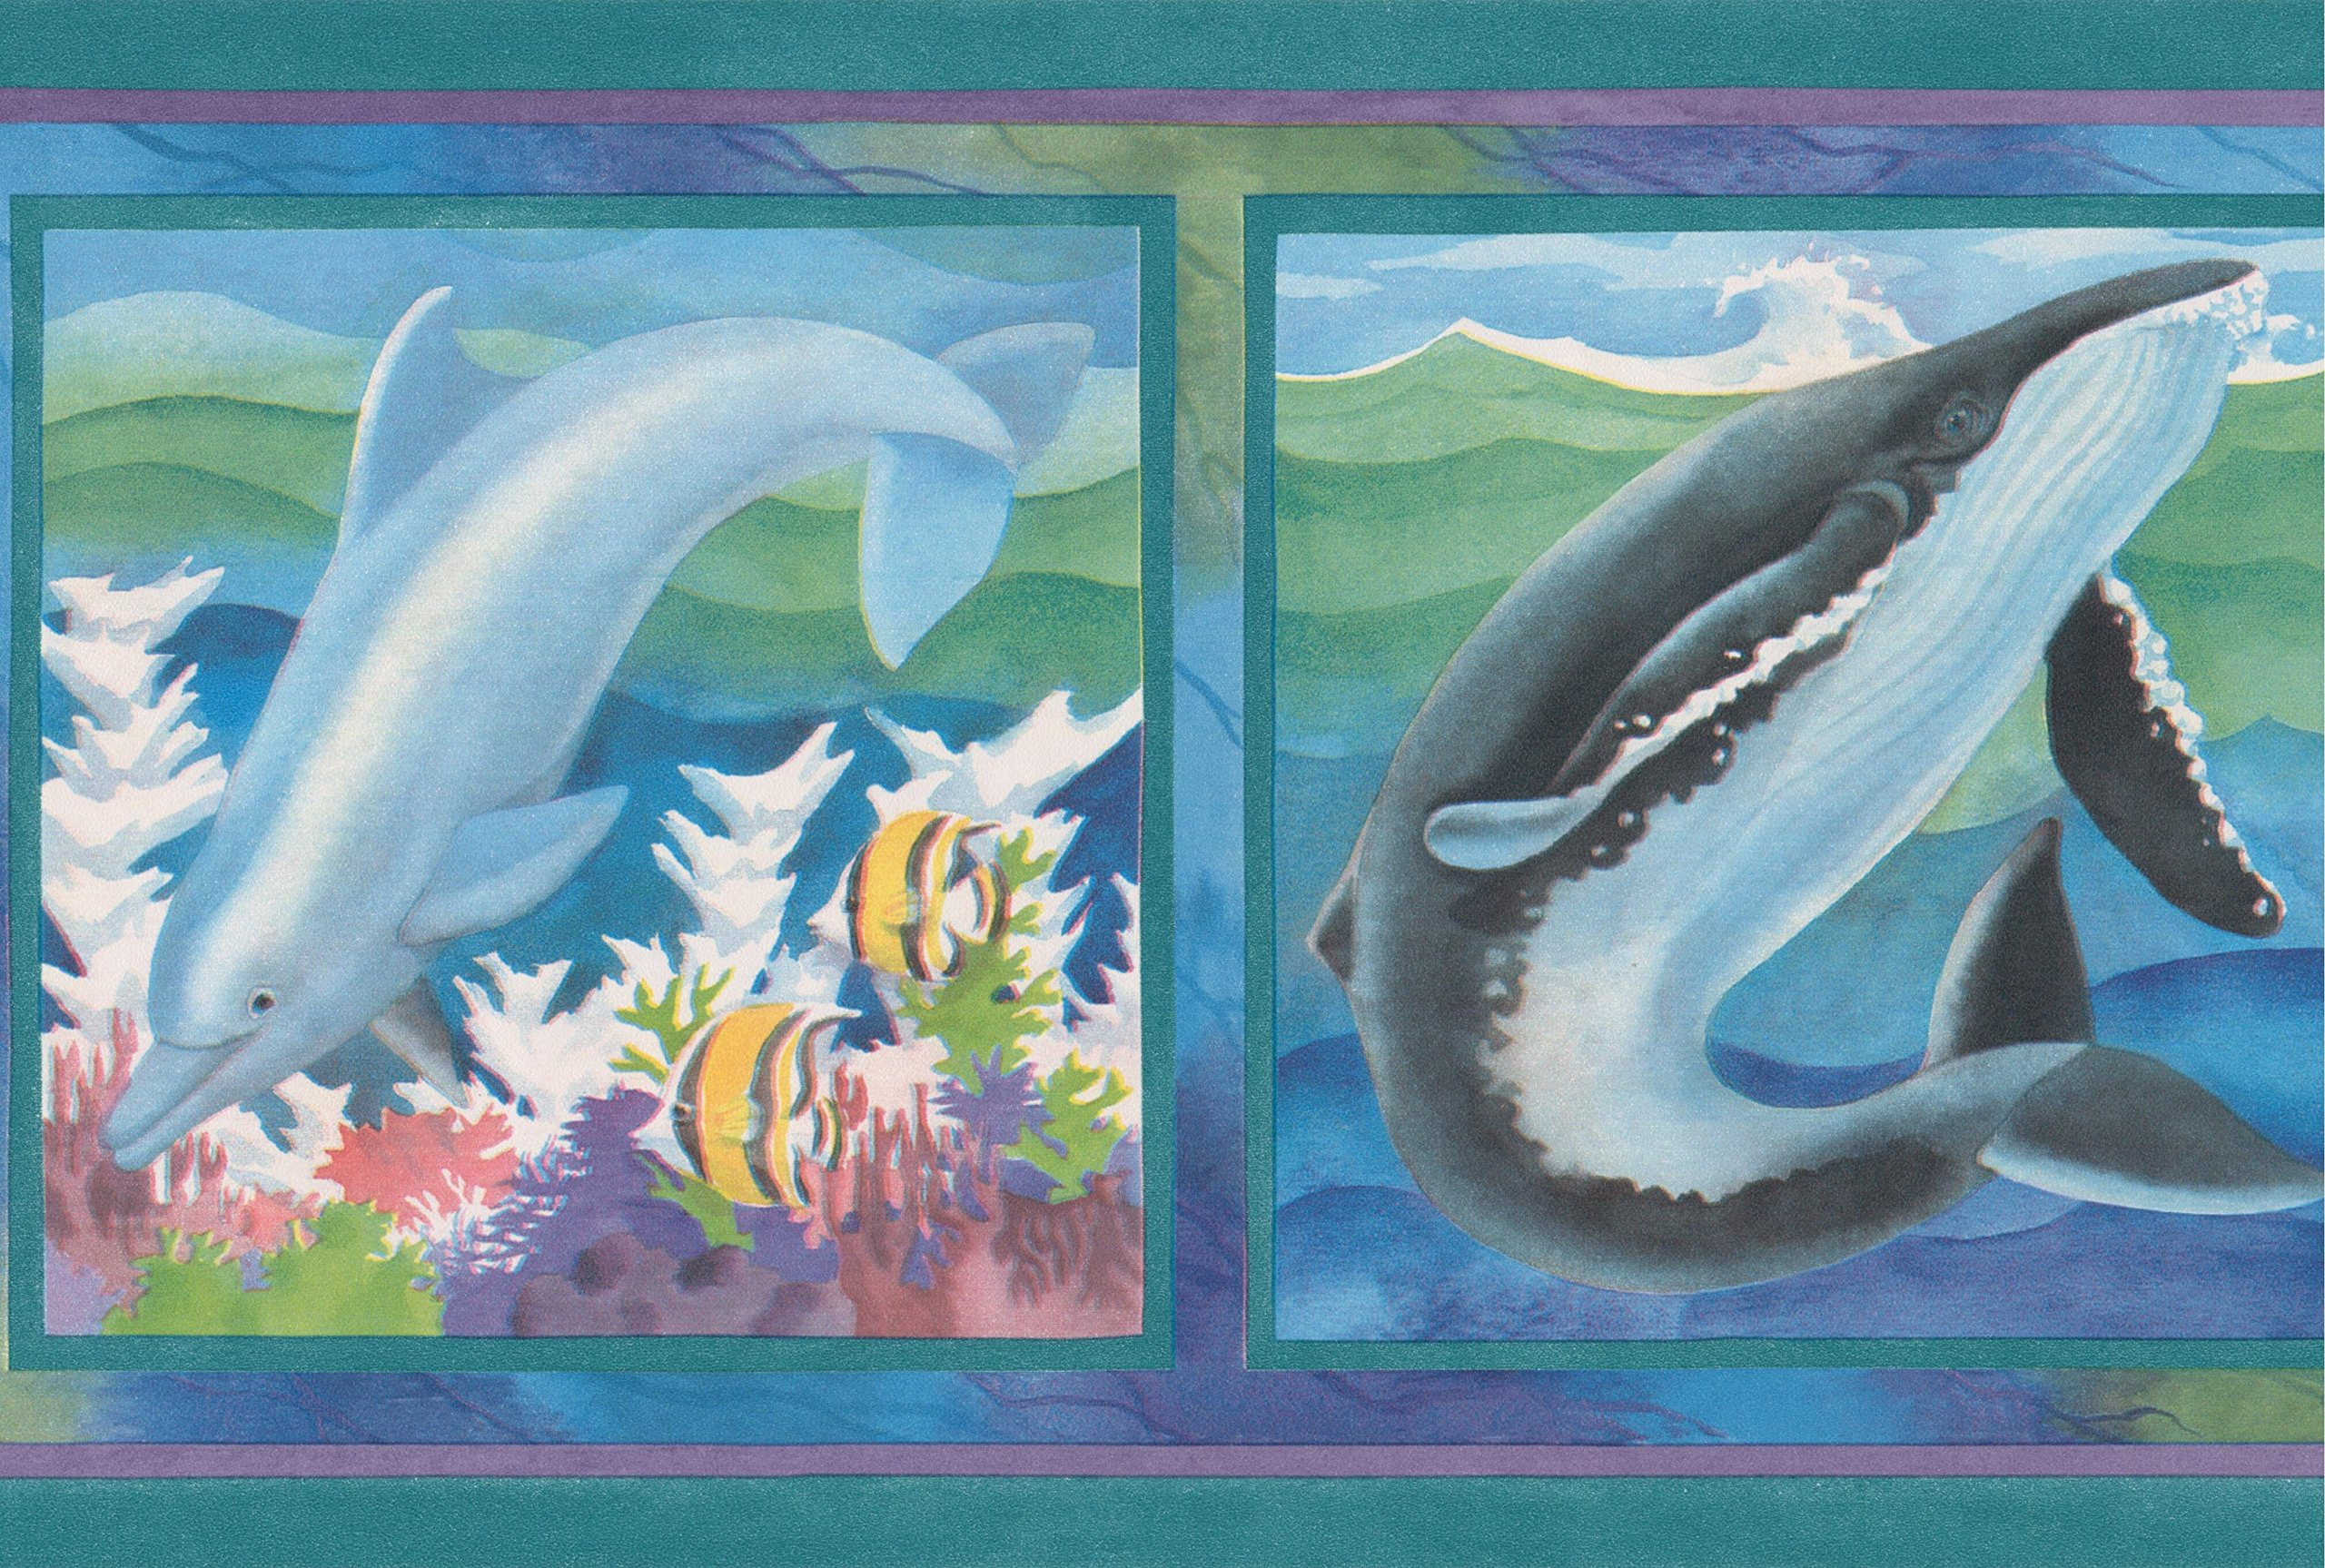 Dolphin Walrus Shark Whale on Pictures Blue Green Wallpaper Border for Kids Bathroom Bedroom, Roll 15' x 7''